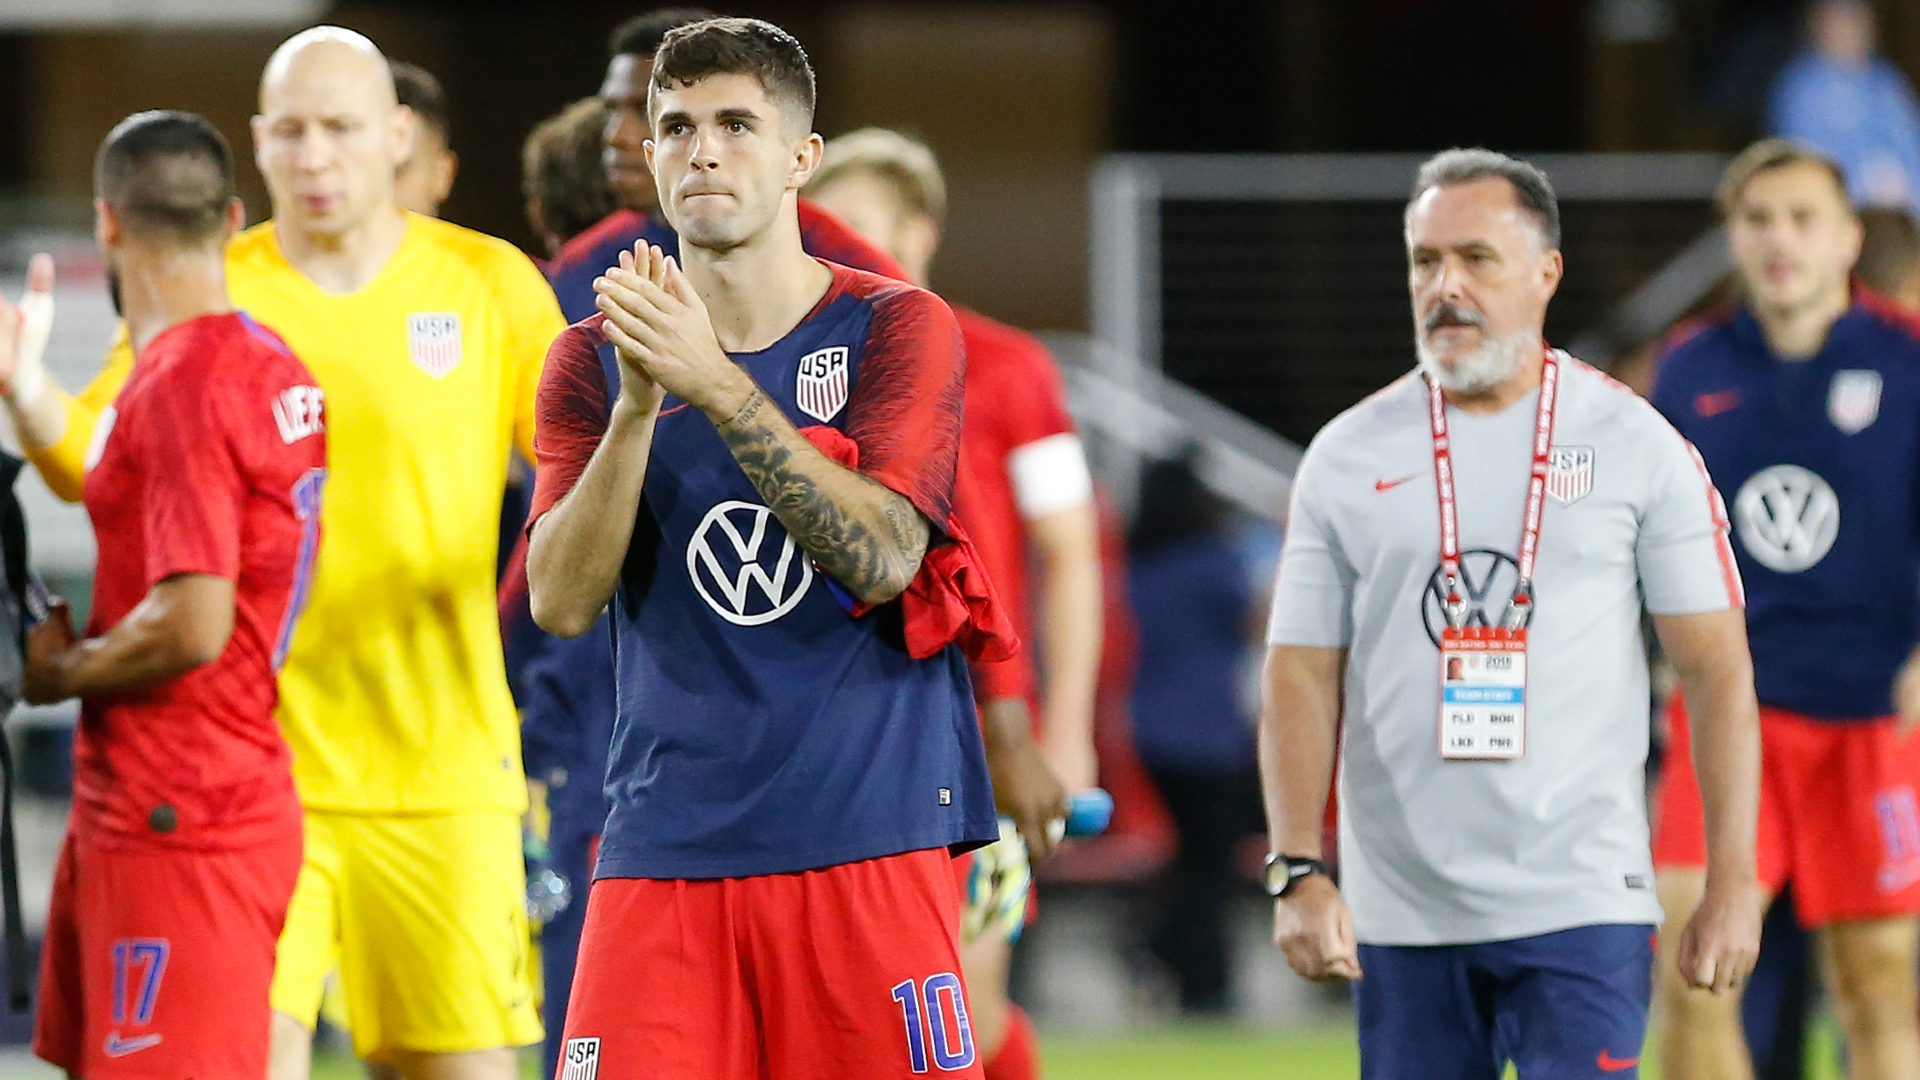 USMNT star Christian Pulisic scores first goal of season for Chelsea